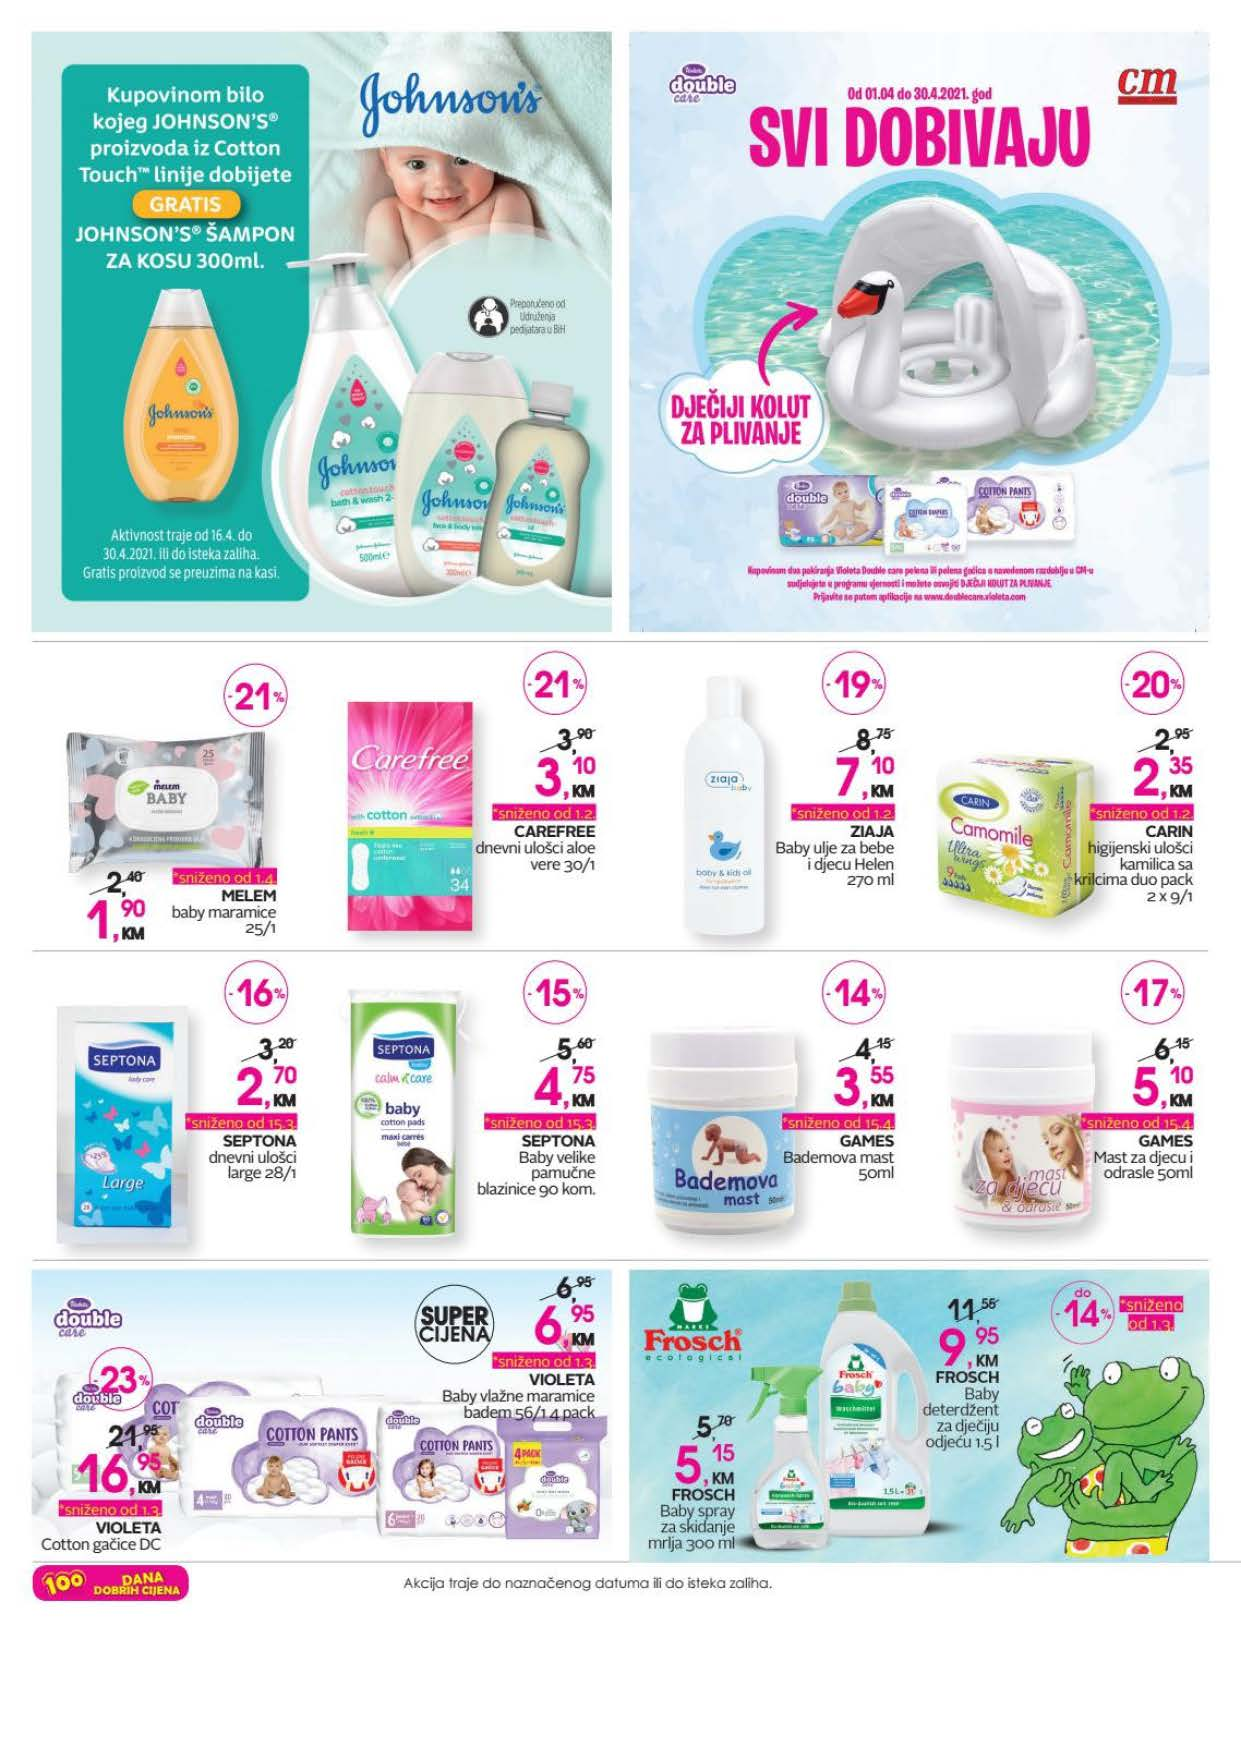 COSMETIC MARKET CM Katalog APRIL 2021 16.04.2021. 30.04.2021. Page 14